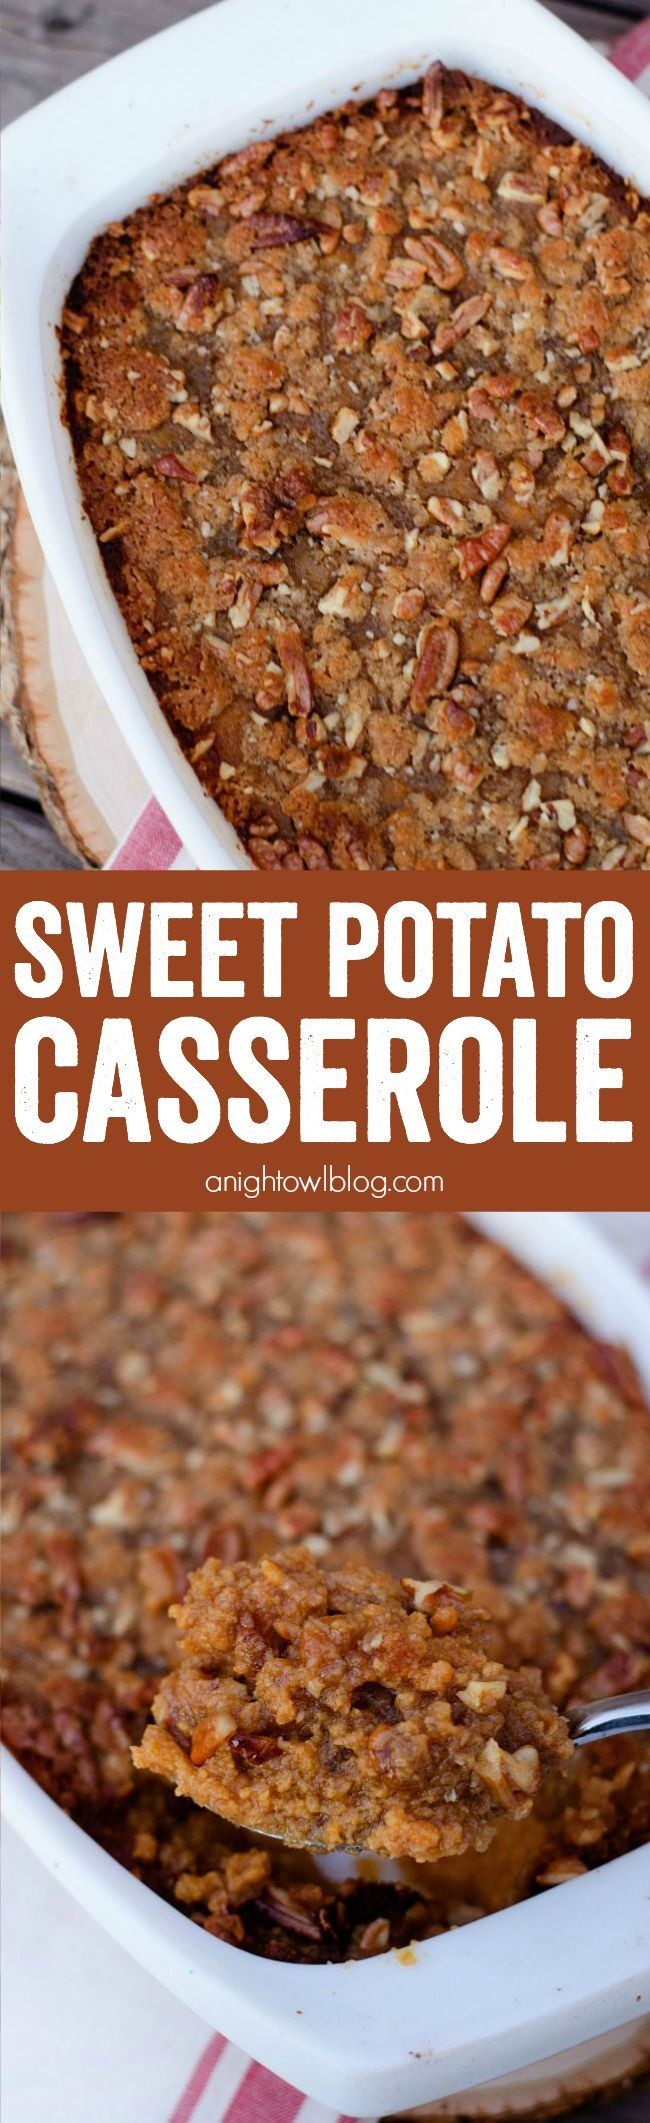 Easy Sweet Potato Casserole | A Night Owl Blog